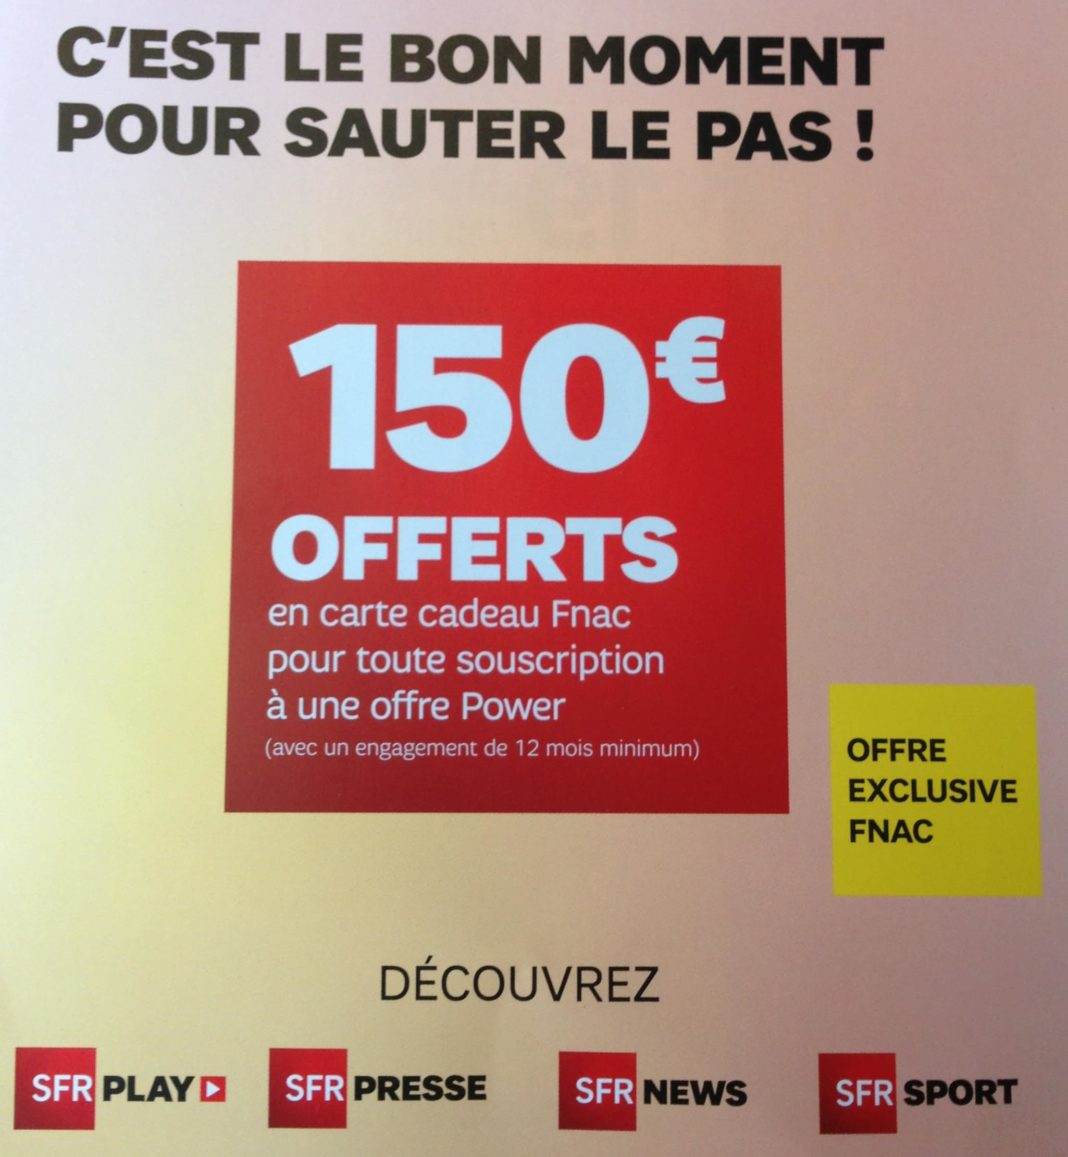 150 euros offerts la fnac pour un abonnement box ou mobile sfr power adsl et fibre fr. Black Bedroom Furniture Sets. Home Design Ideas